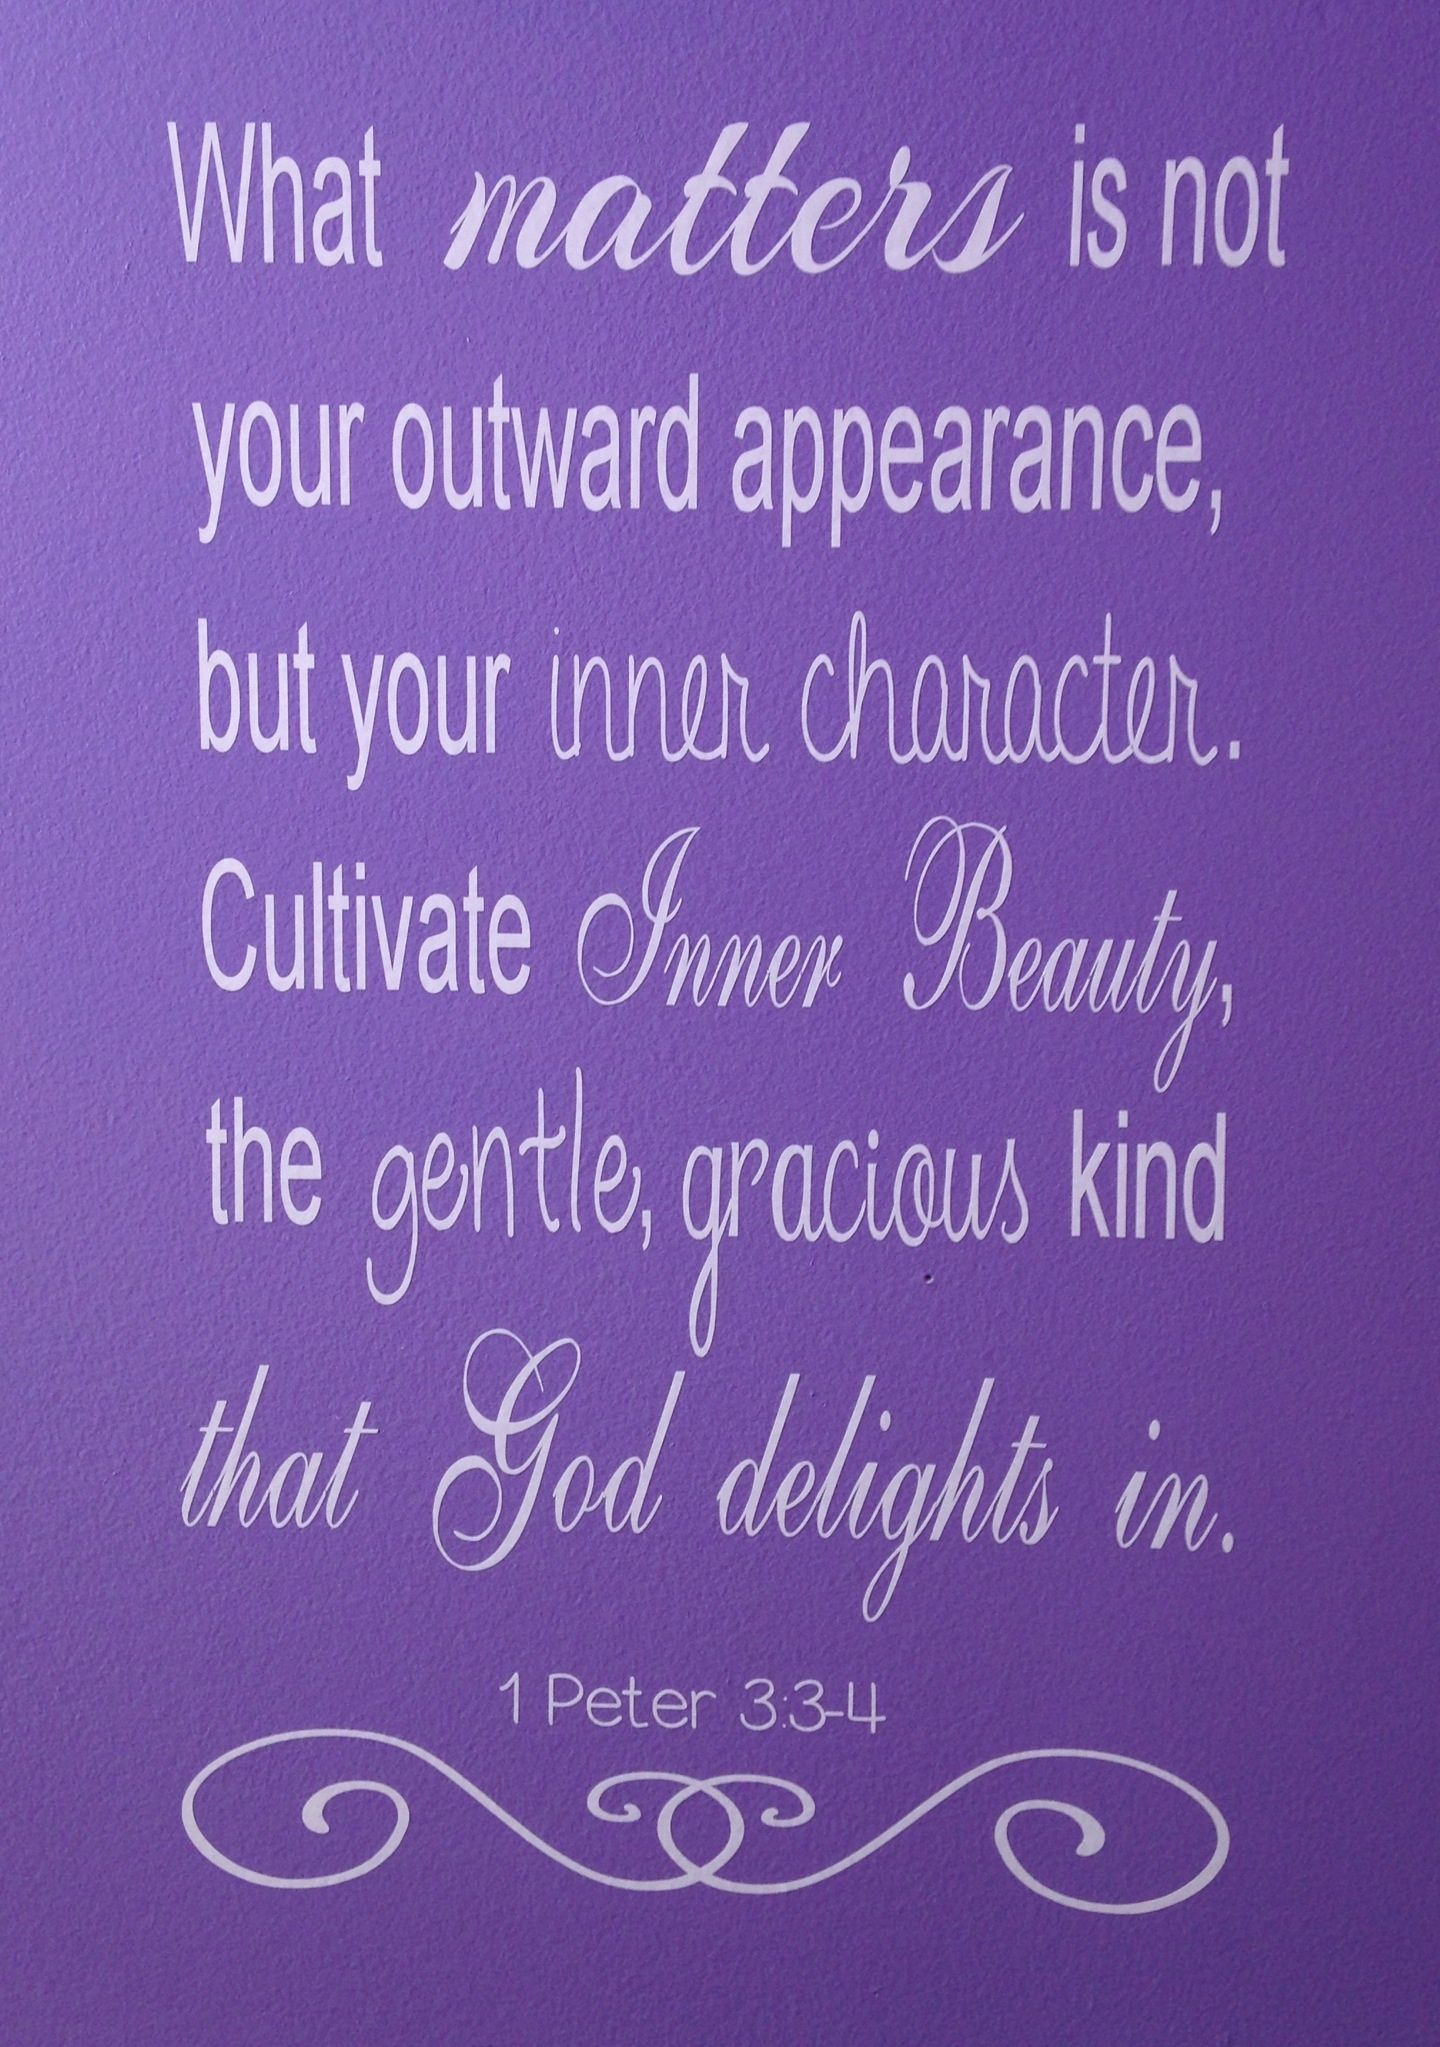 DIY vinyl wall decal using Silhouette Cameo 1 Peter 3:3-4 ...